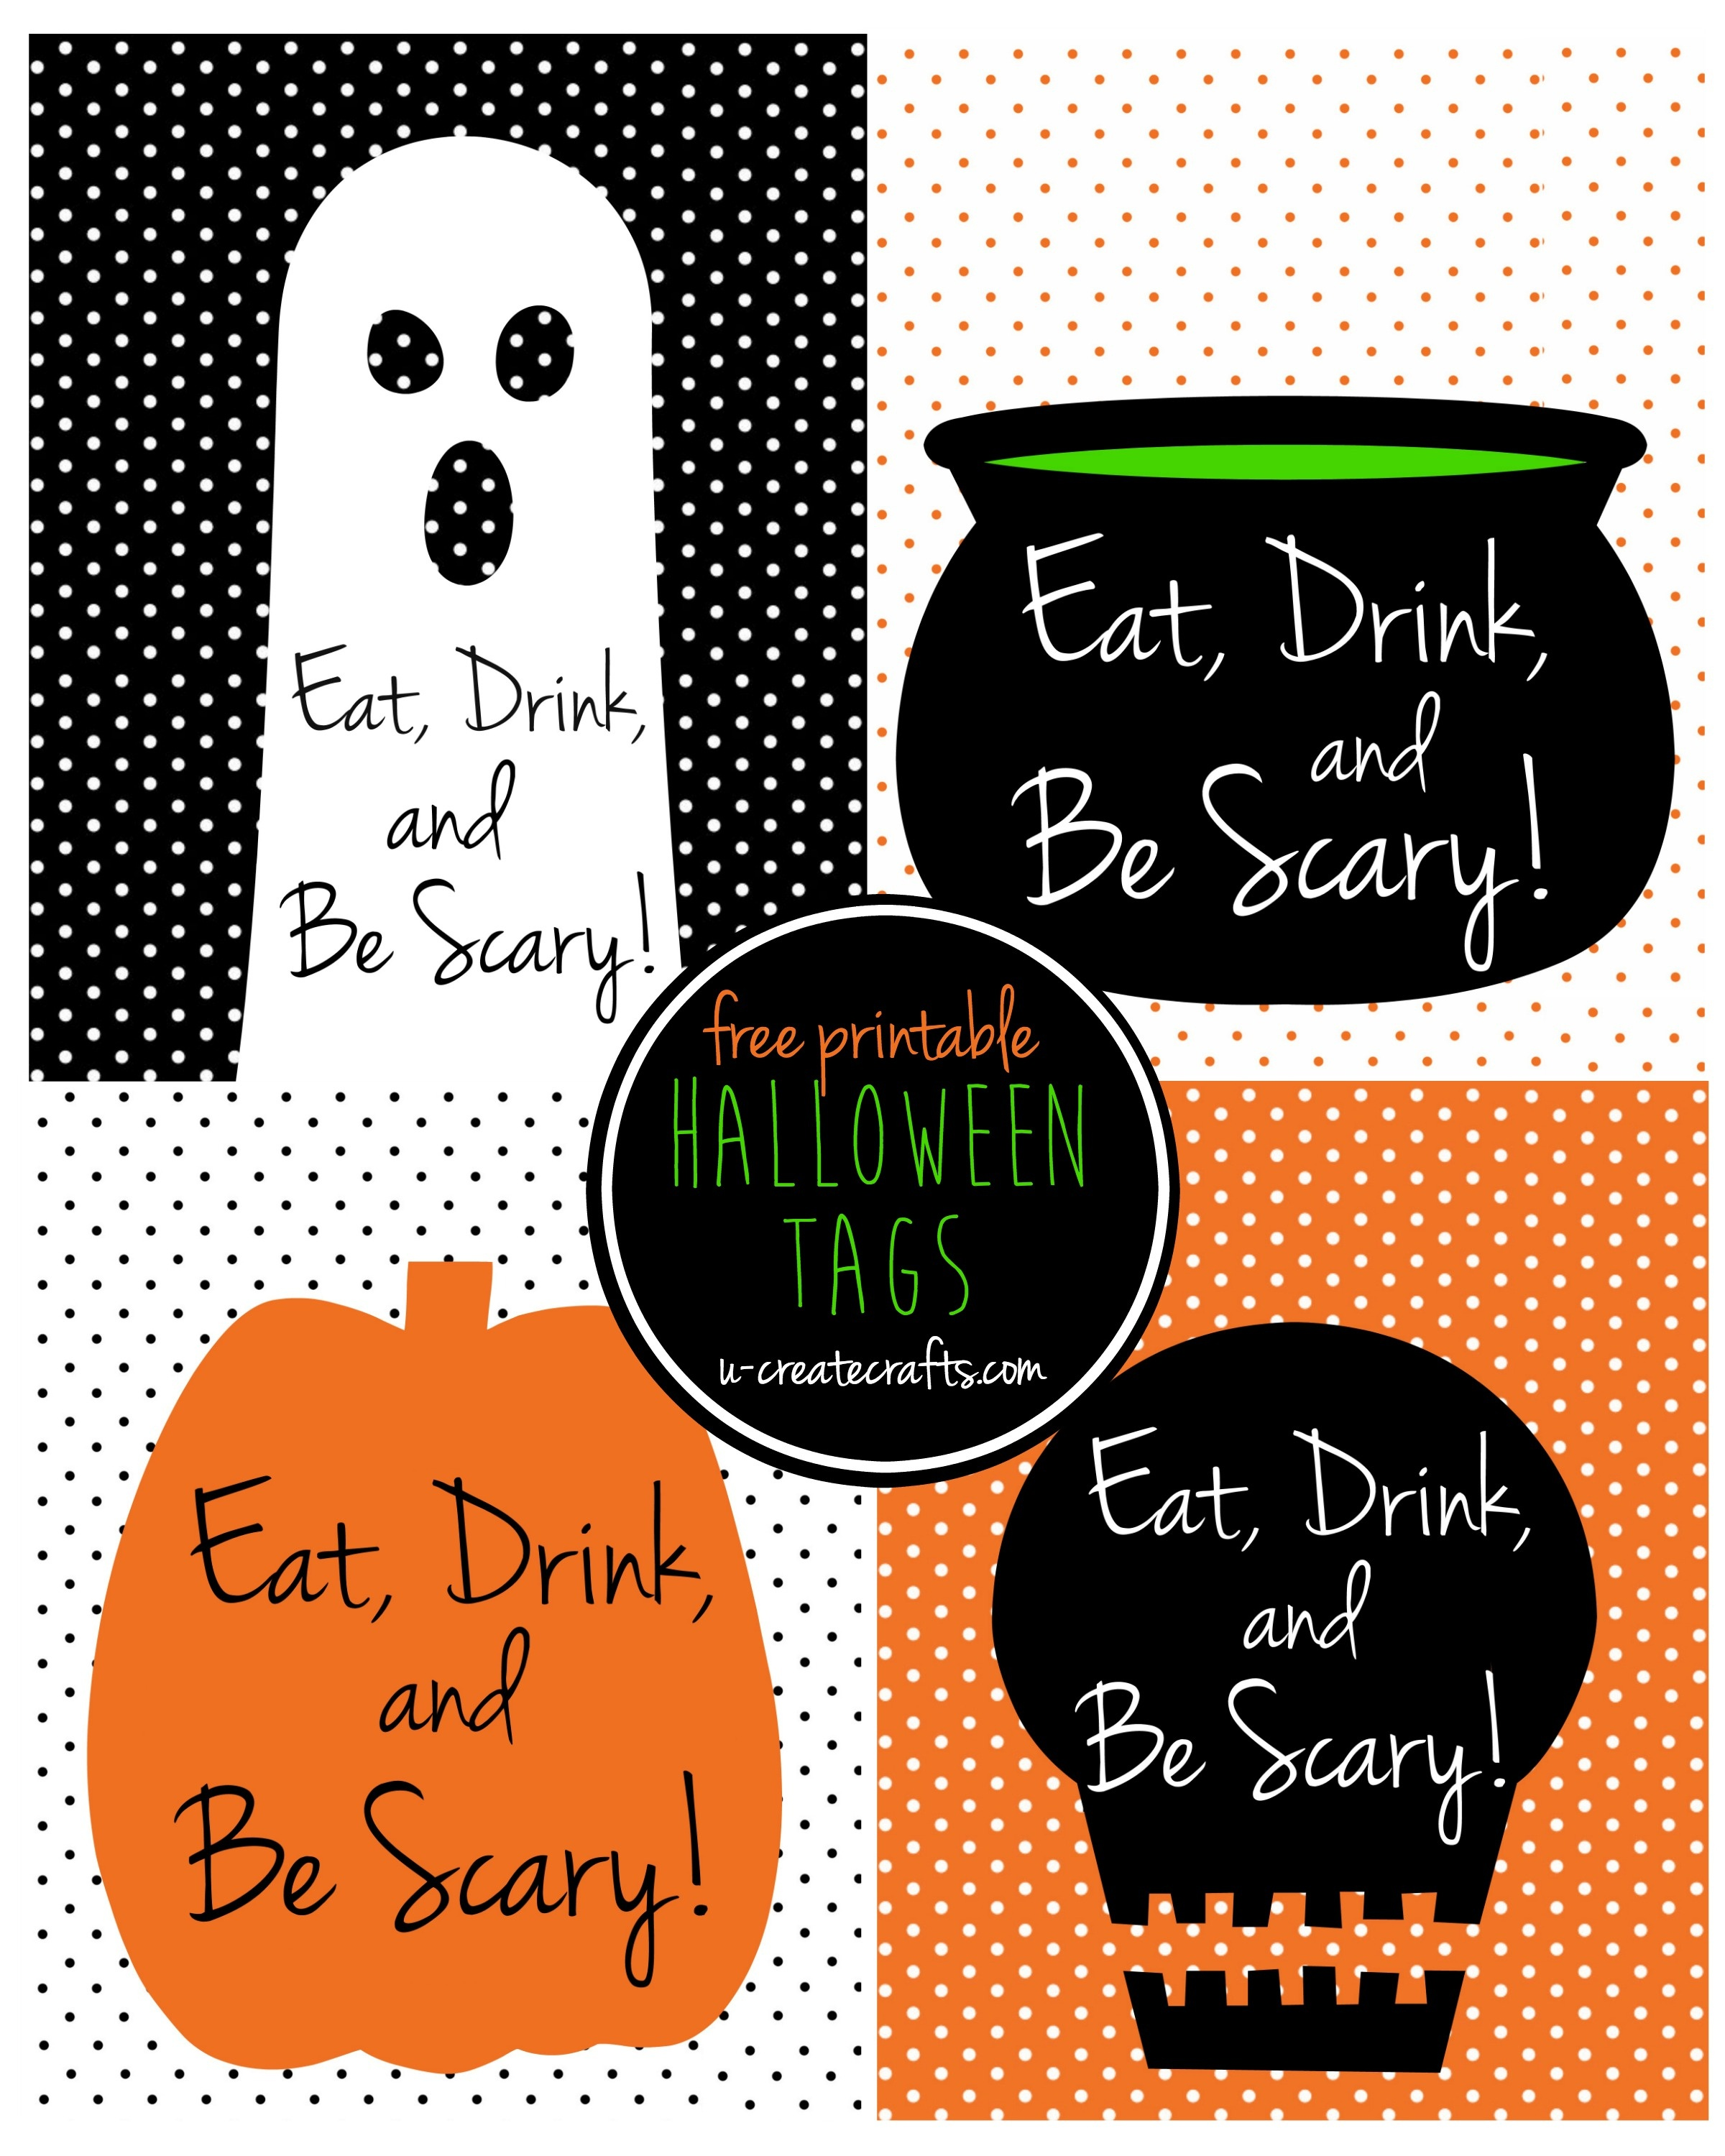 Eat, Drink, And Be Scary Halloween Printable Tags - Eat Drink And Be Scary Free Printable